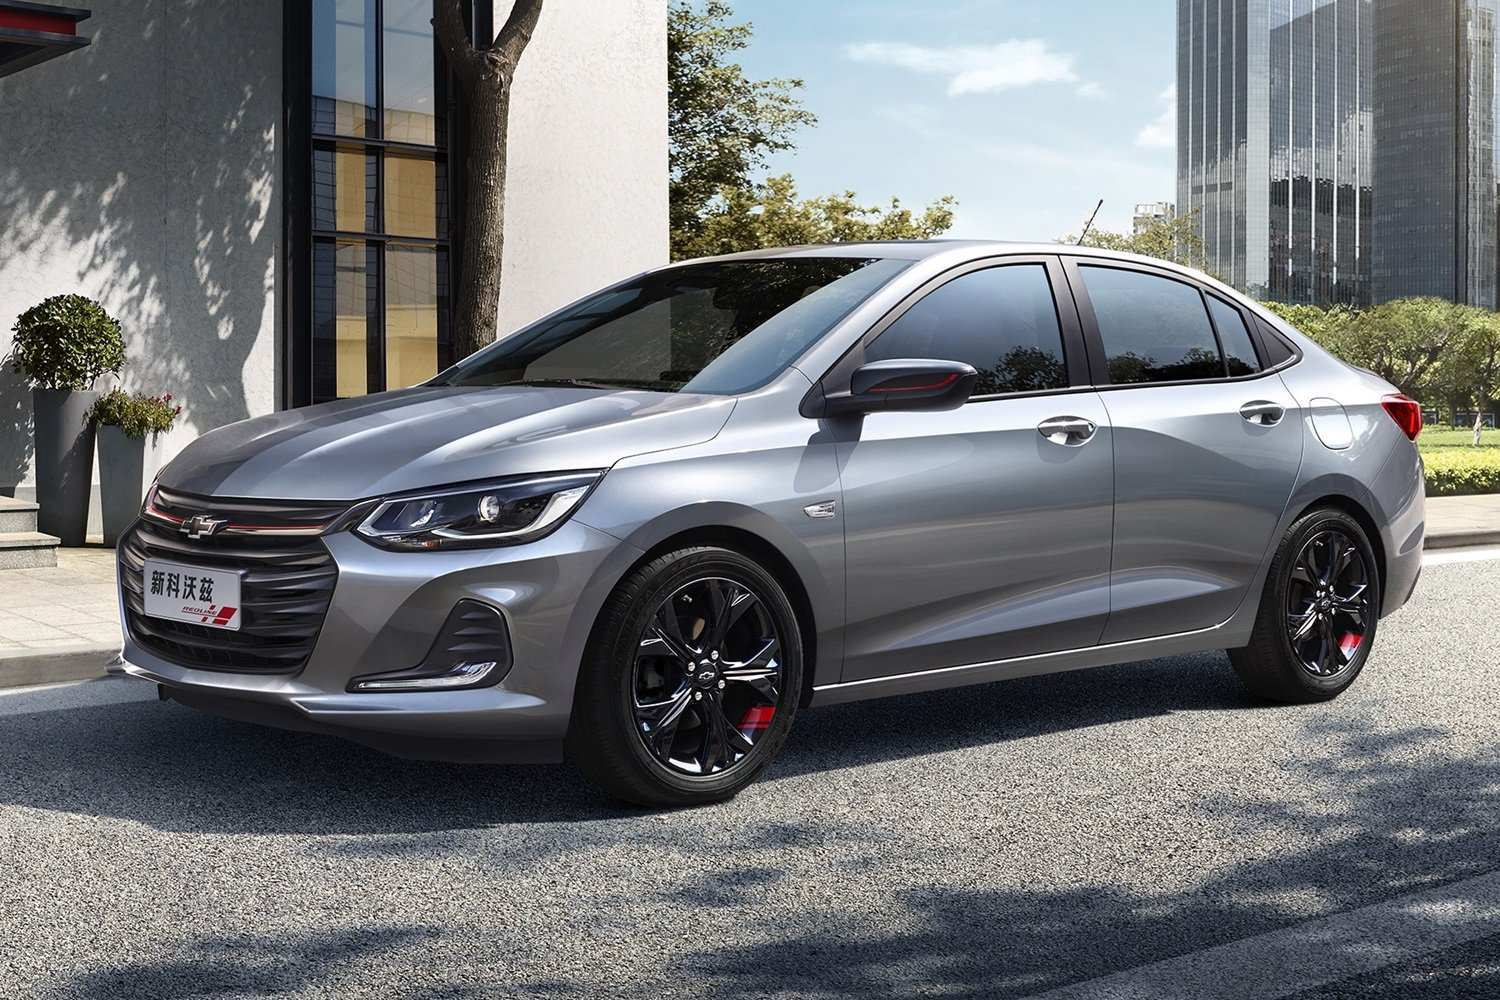 11 All New Chevrolet Prisma 2020 China Pricing